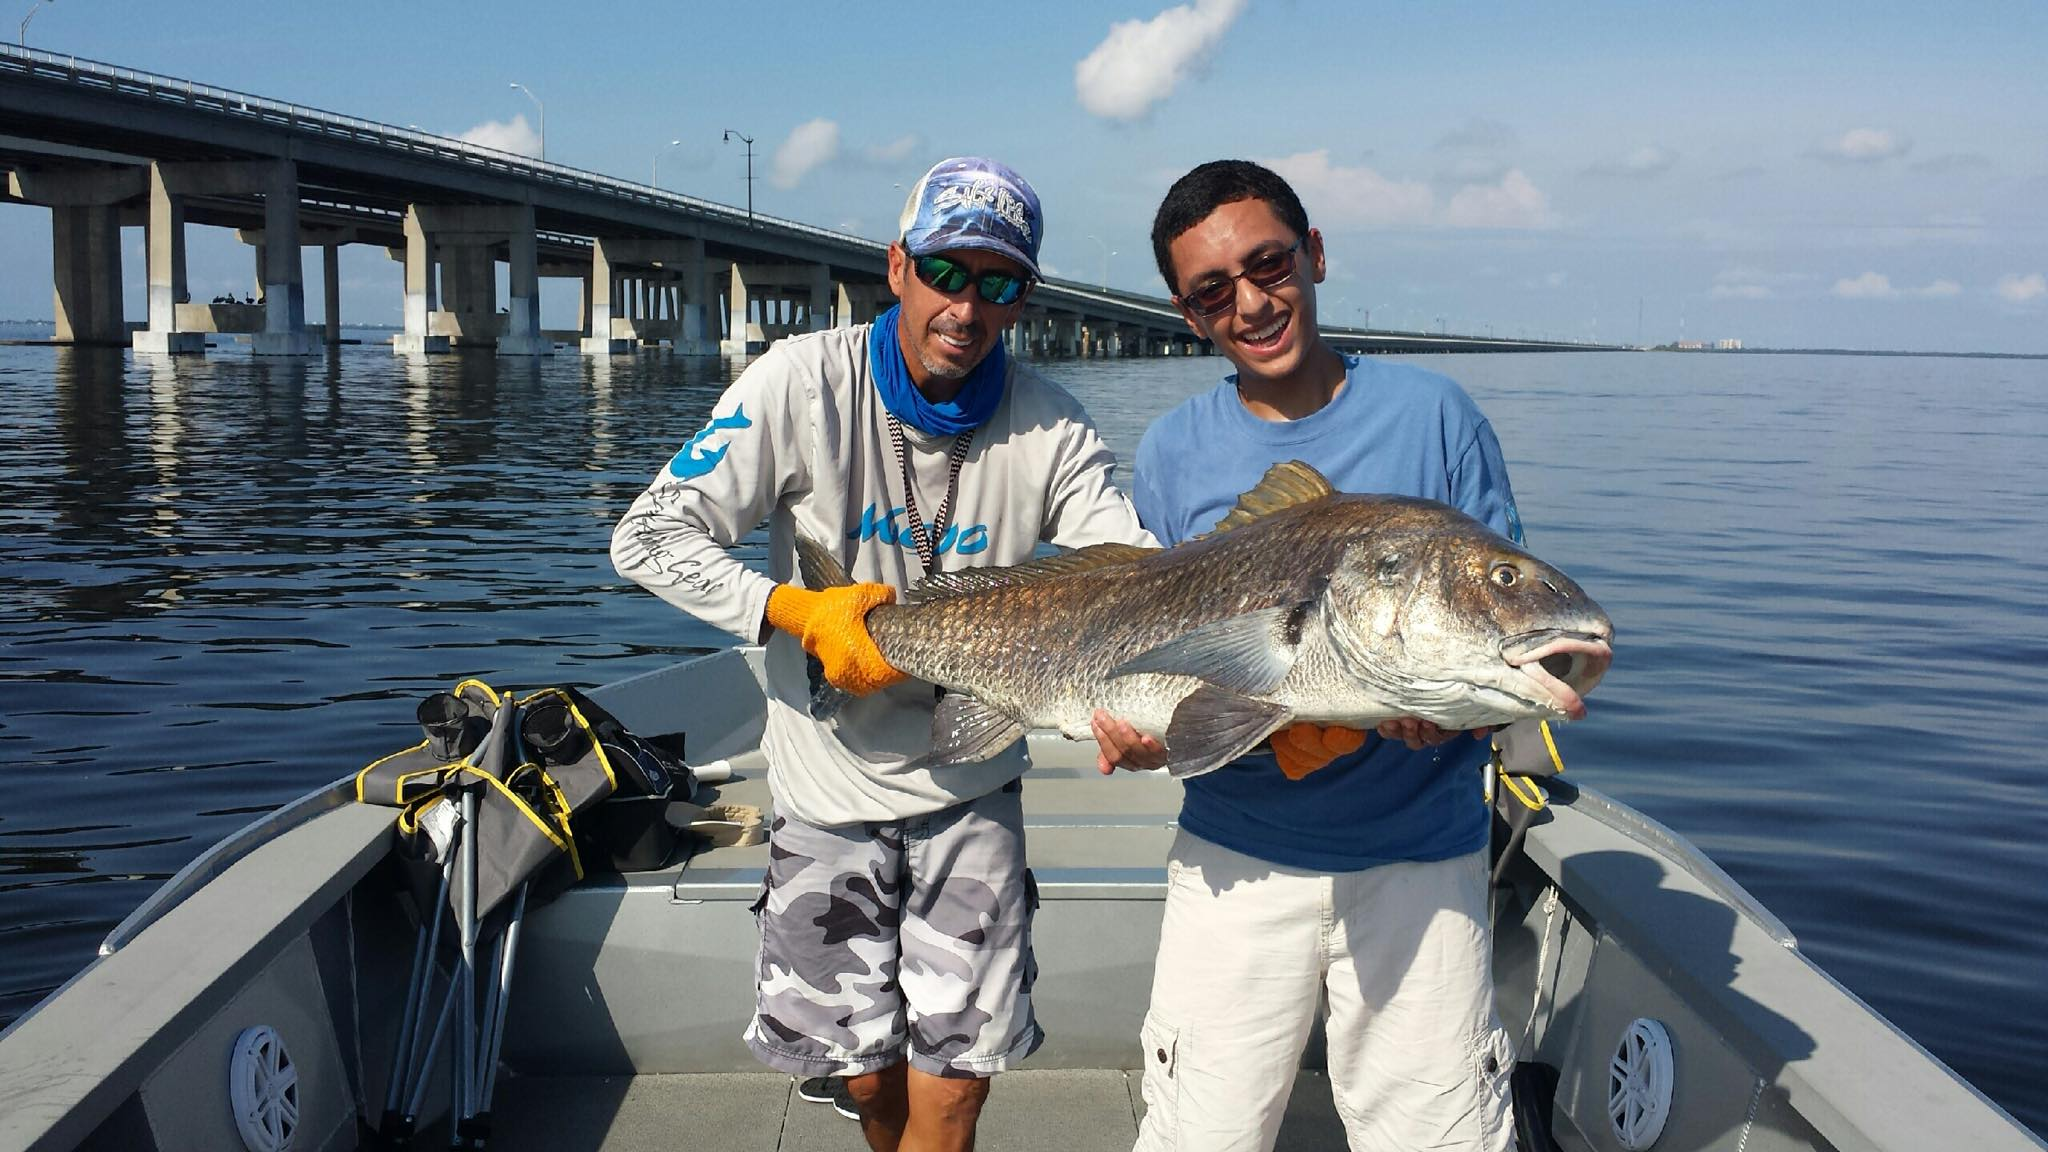 Black drum archives hotshot guide services for Tampa bay fishing guides